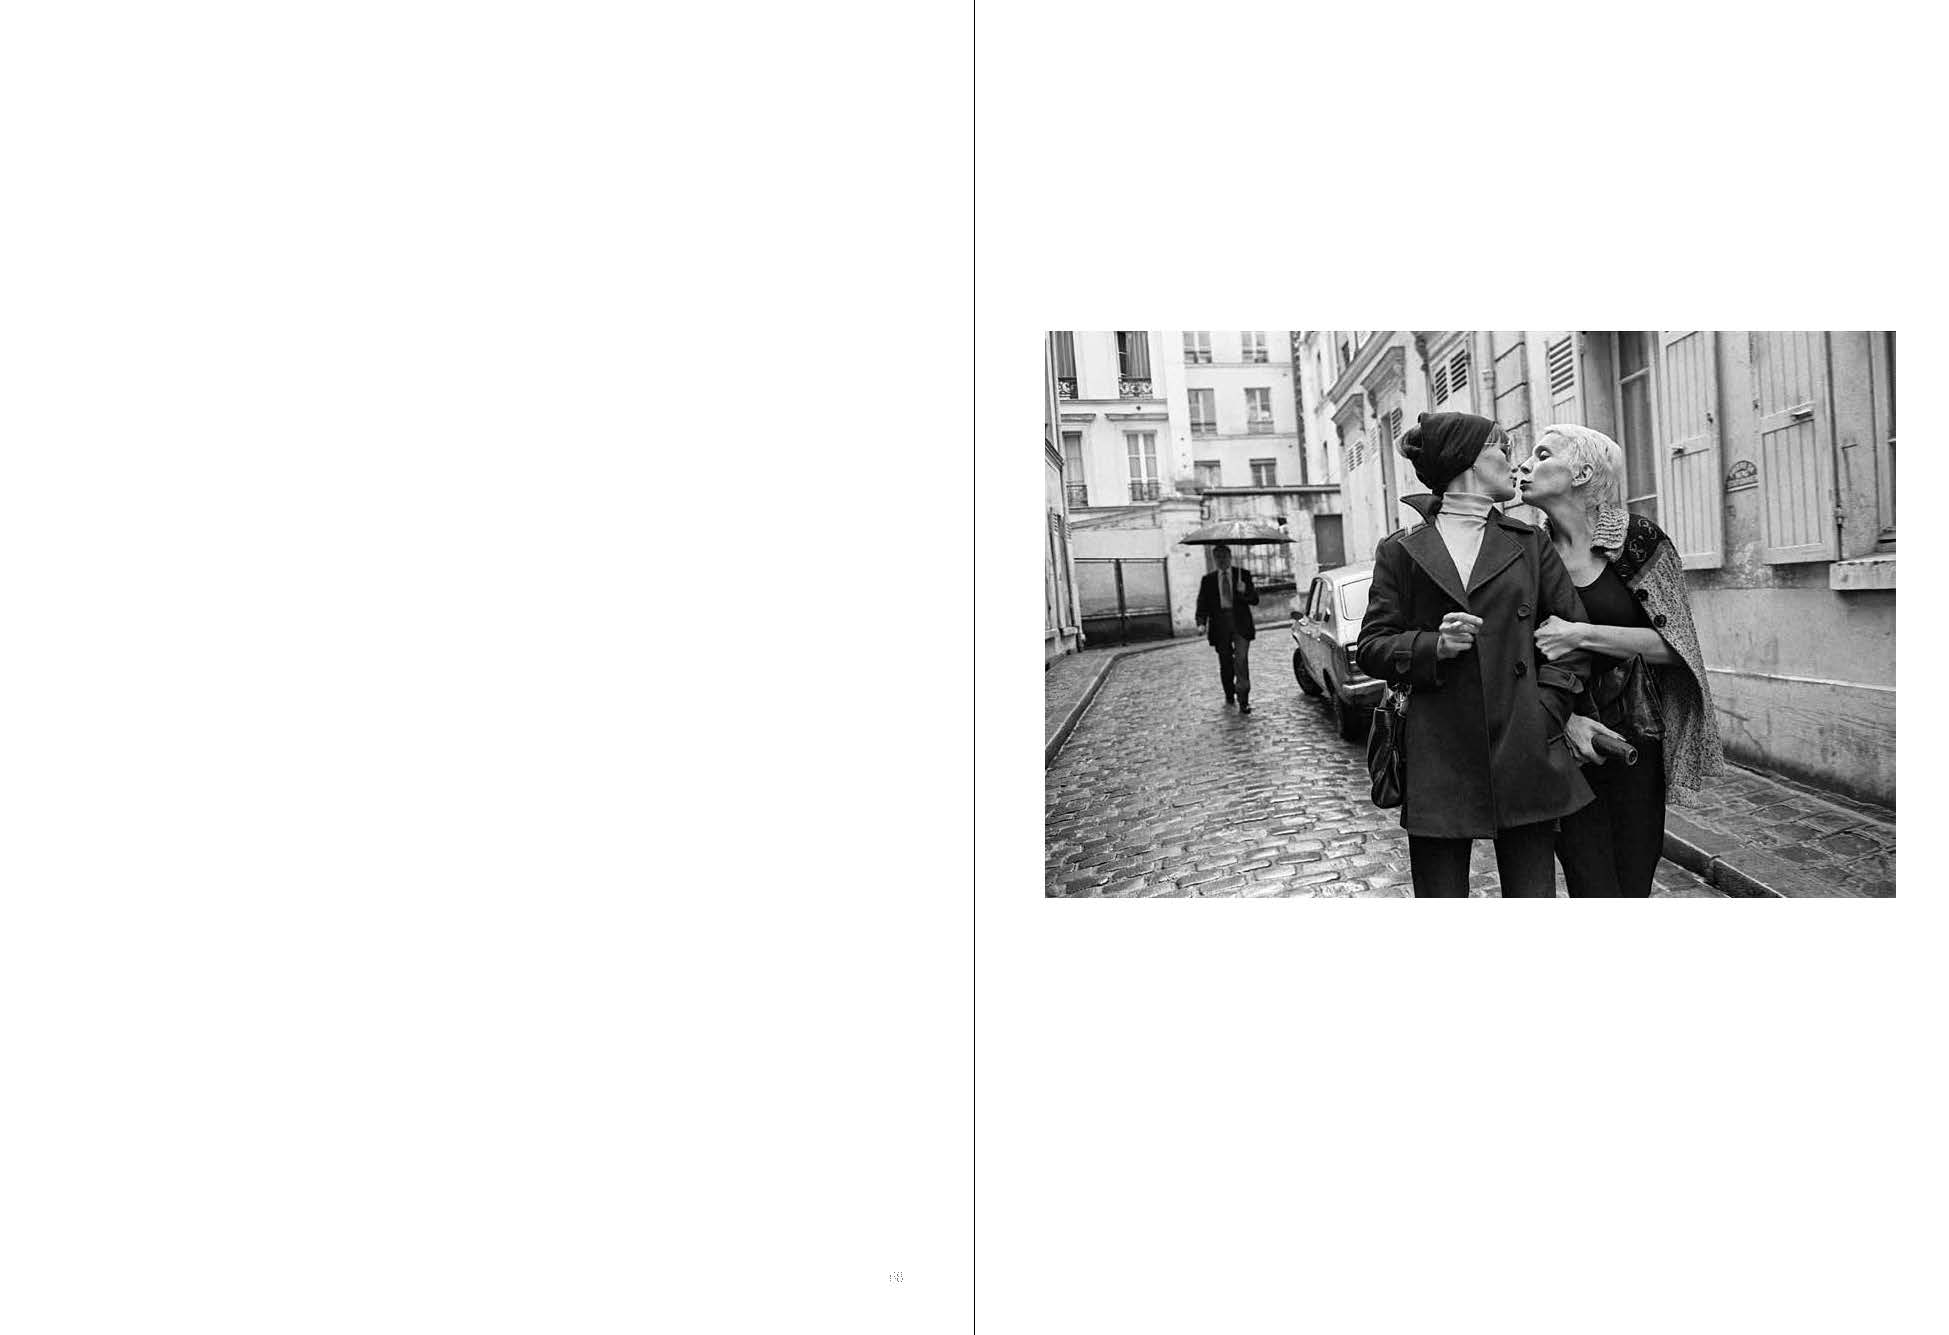 Jane Evelyn Atwood – Pigalle People 1978–1979